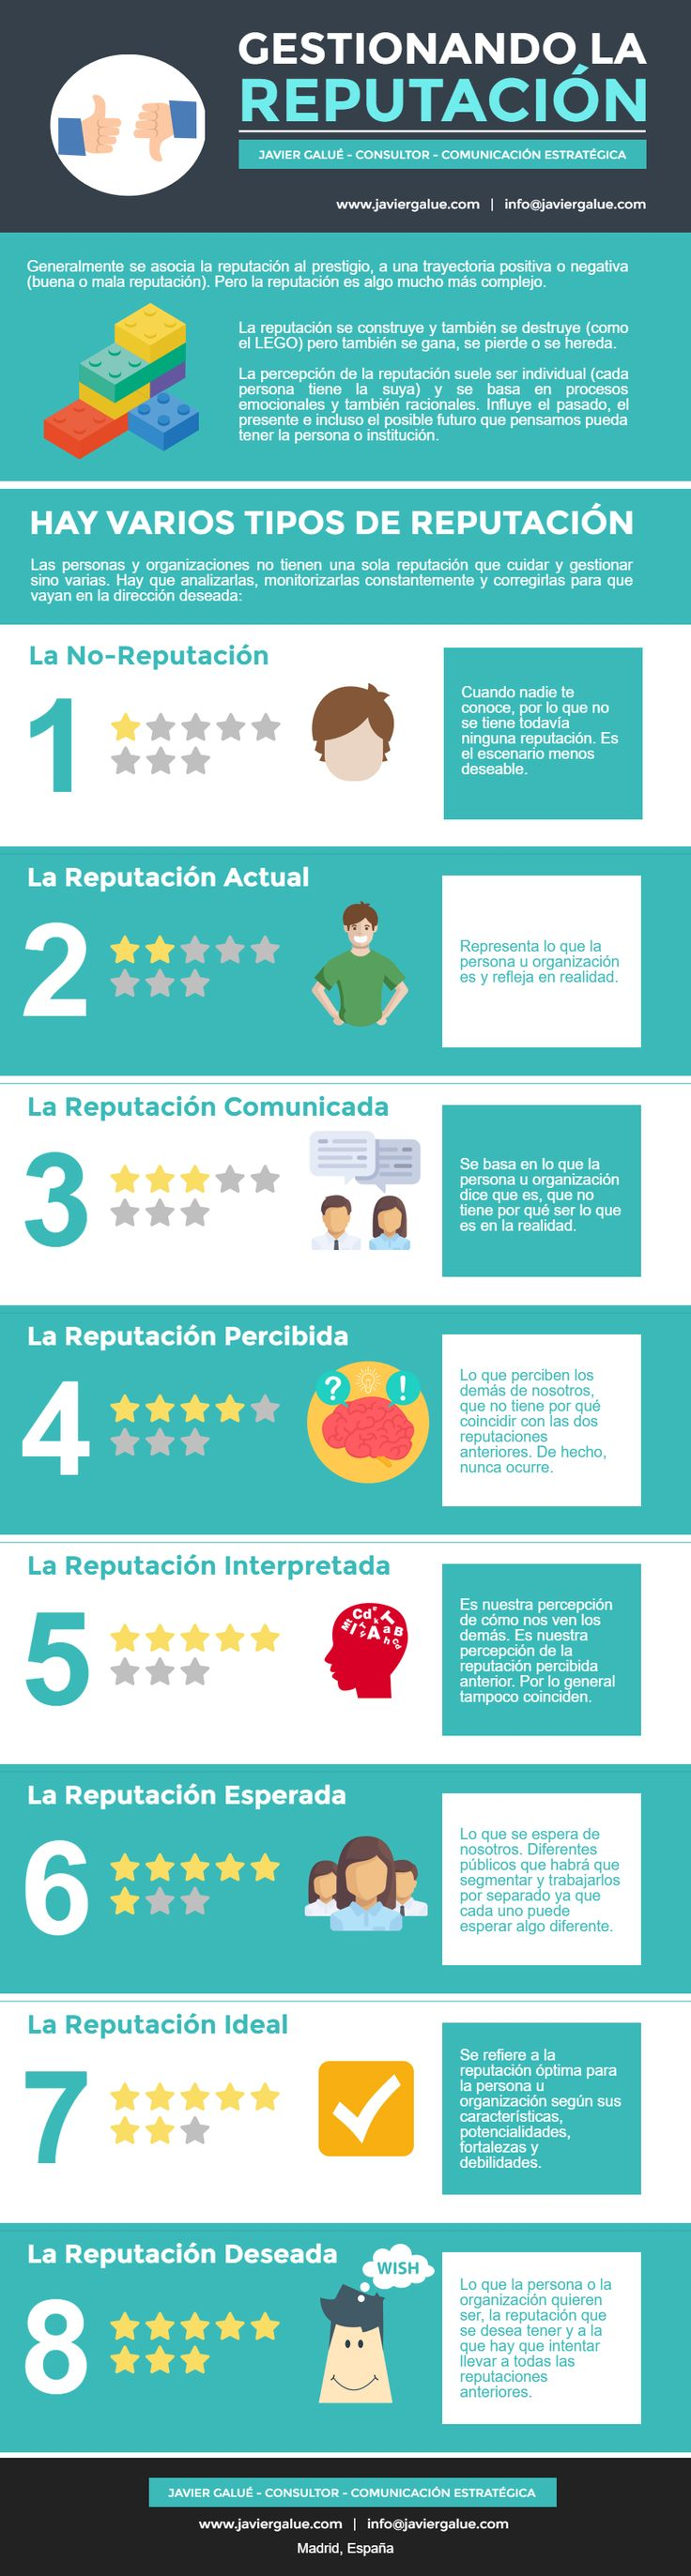 Gestionando la Reputación -  #reputacion #marketing